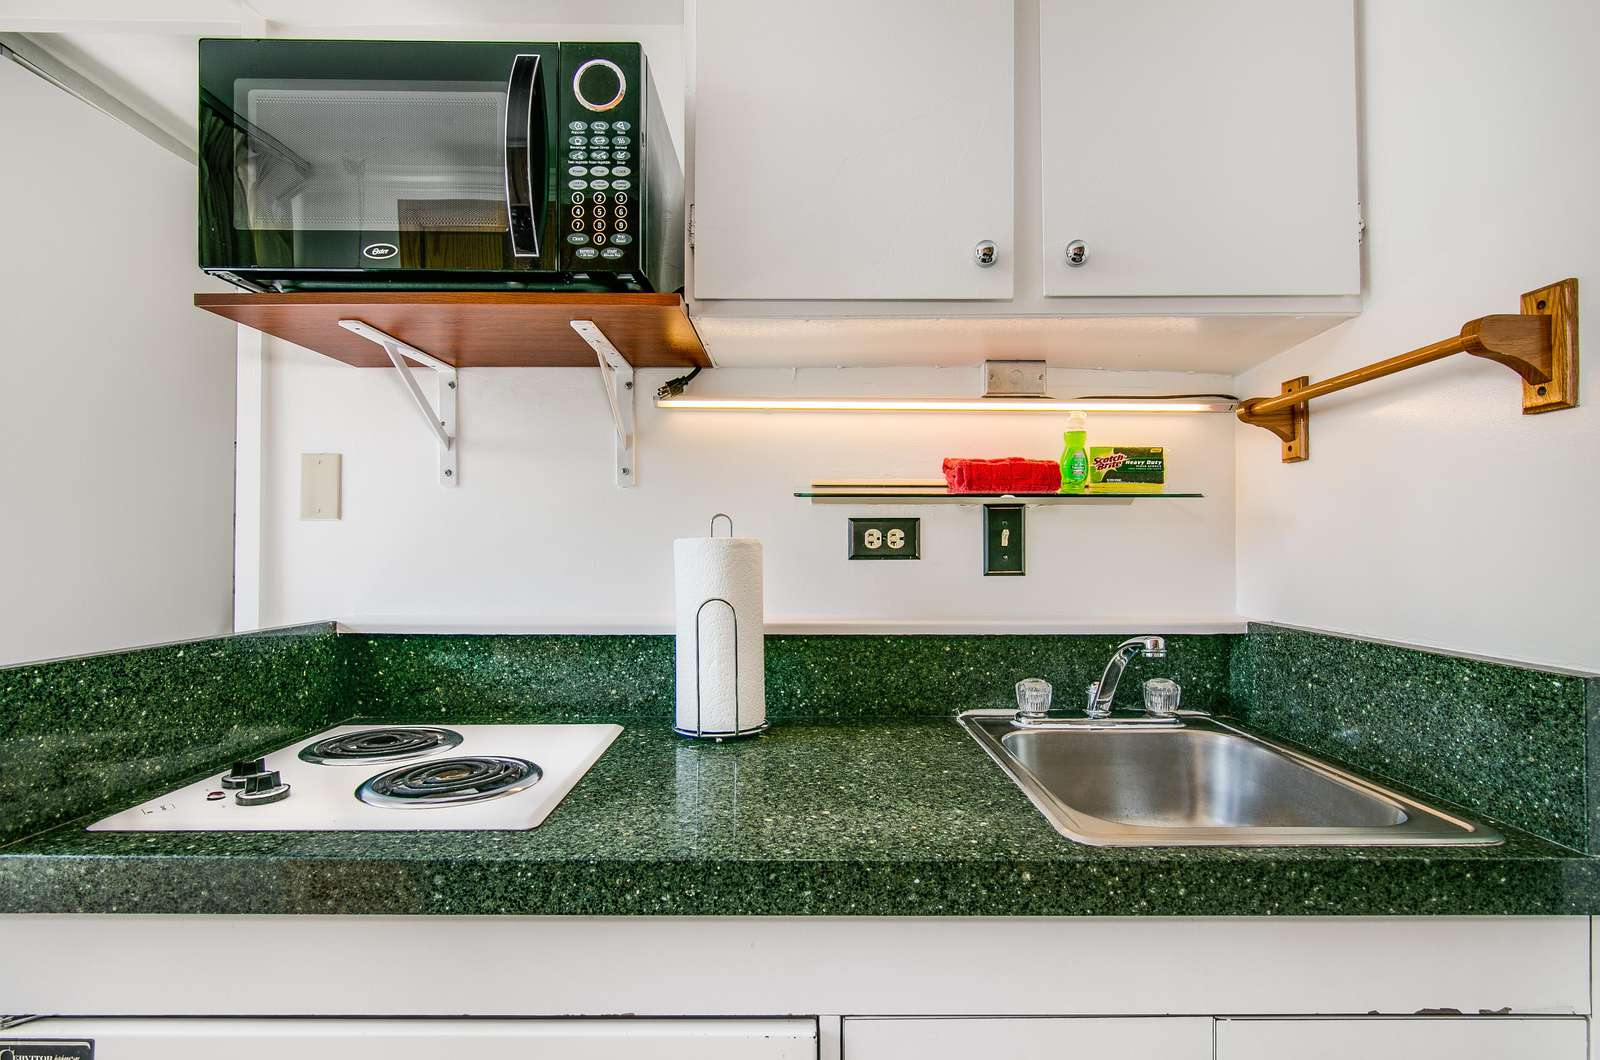 Twin stove top and microwave